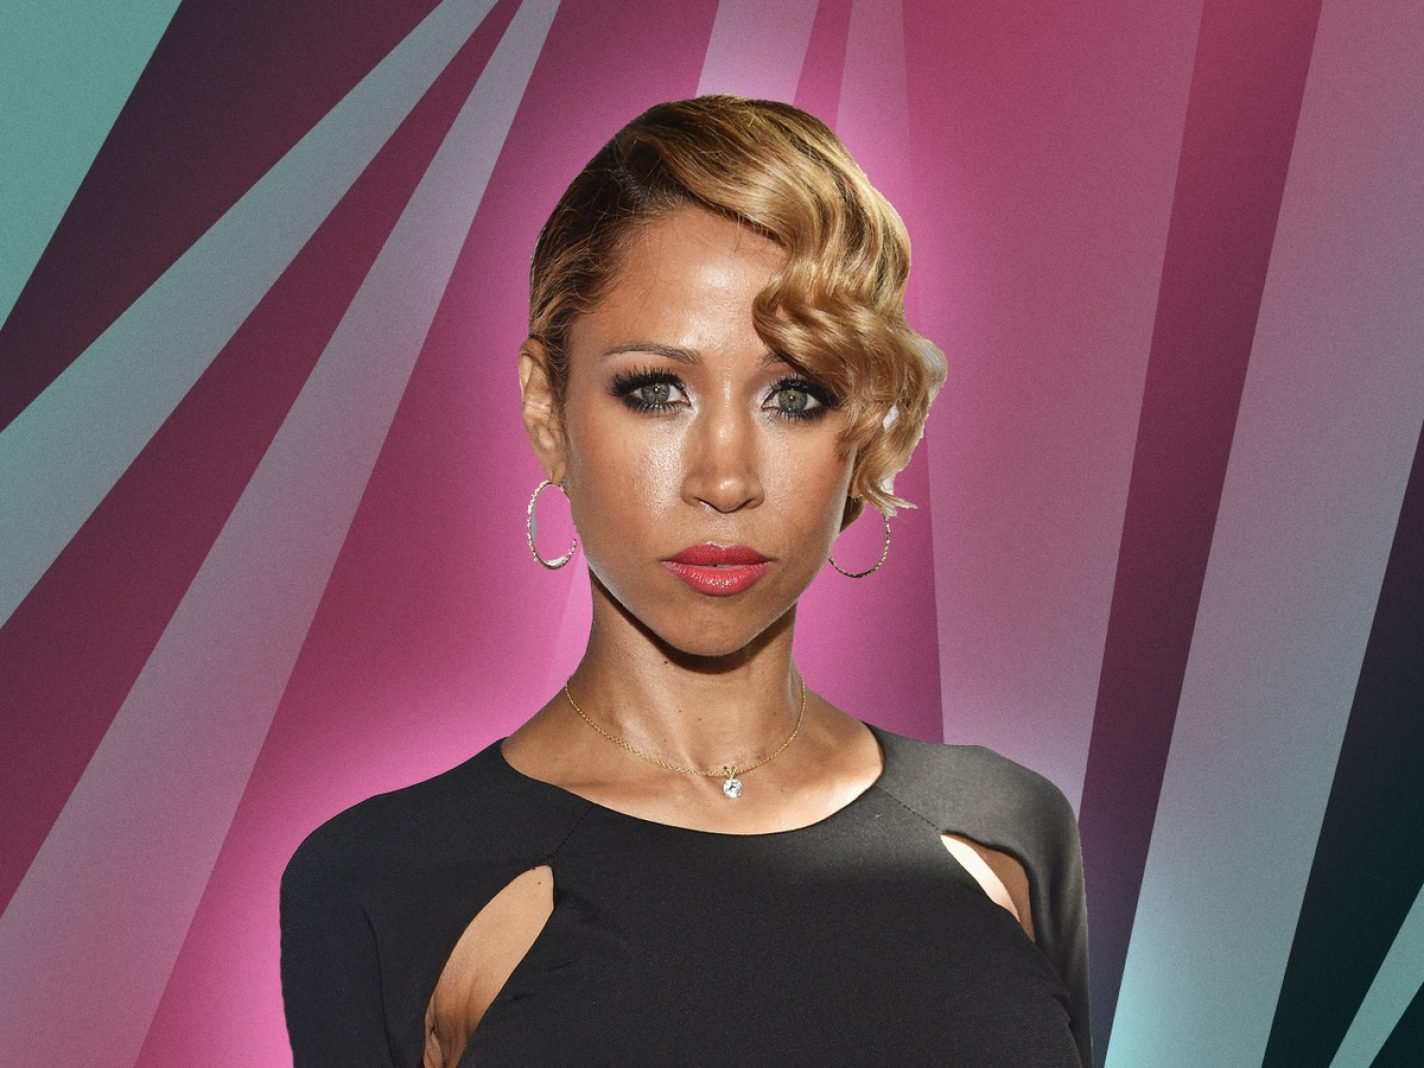 The Mo'Kelly Show – Stacey Dash's Regret * California Goes Red * Florida Bikers Rebuke Biden (LISTEN)